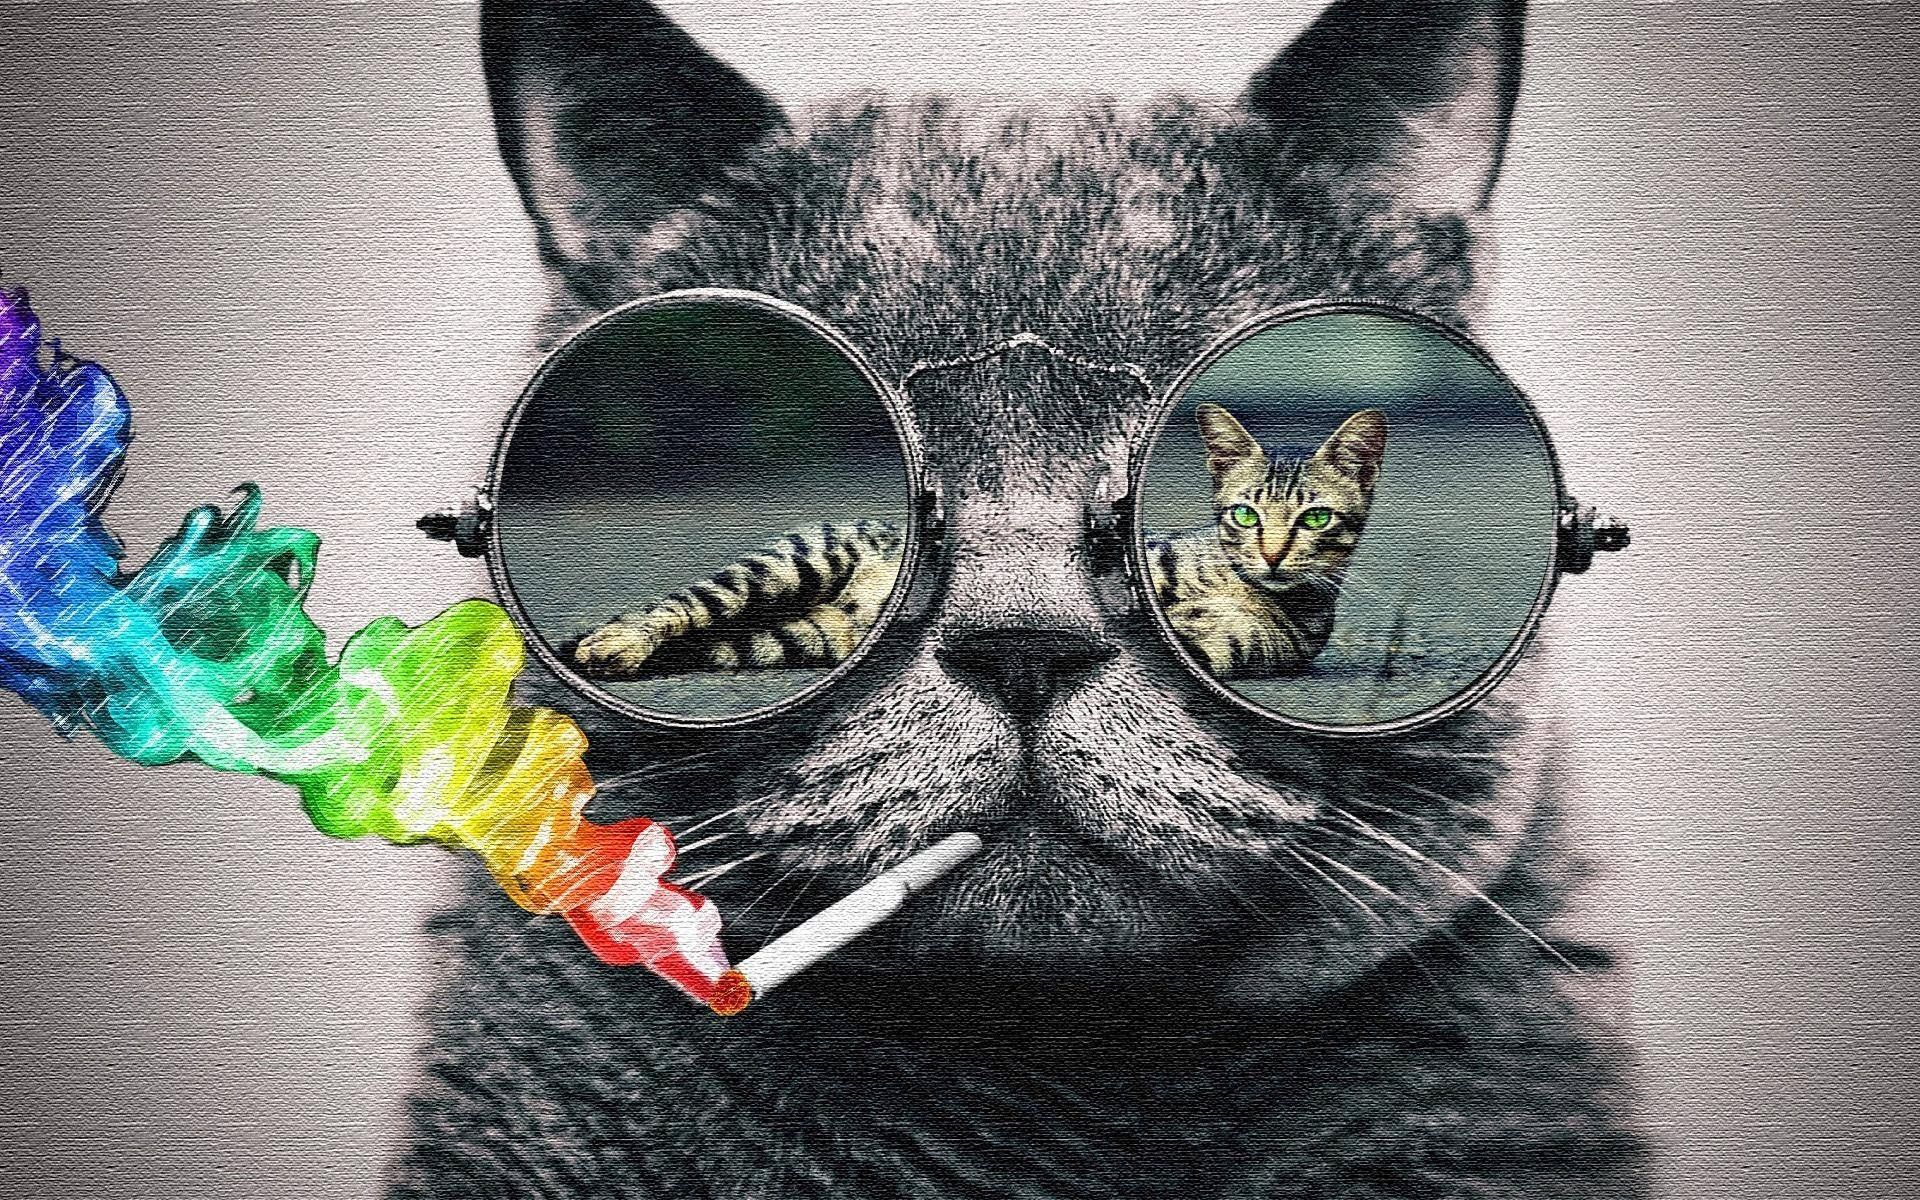 Cool Cat Wallpapers Hd Posted By Christopher Sellers